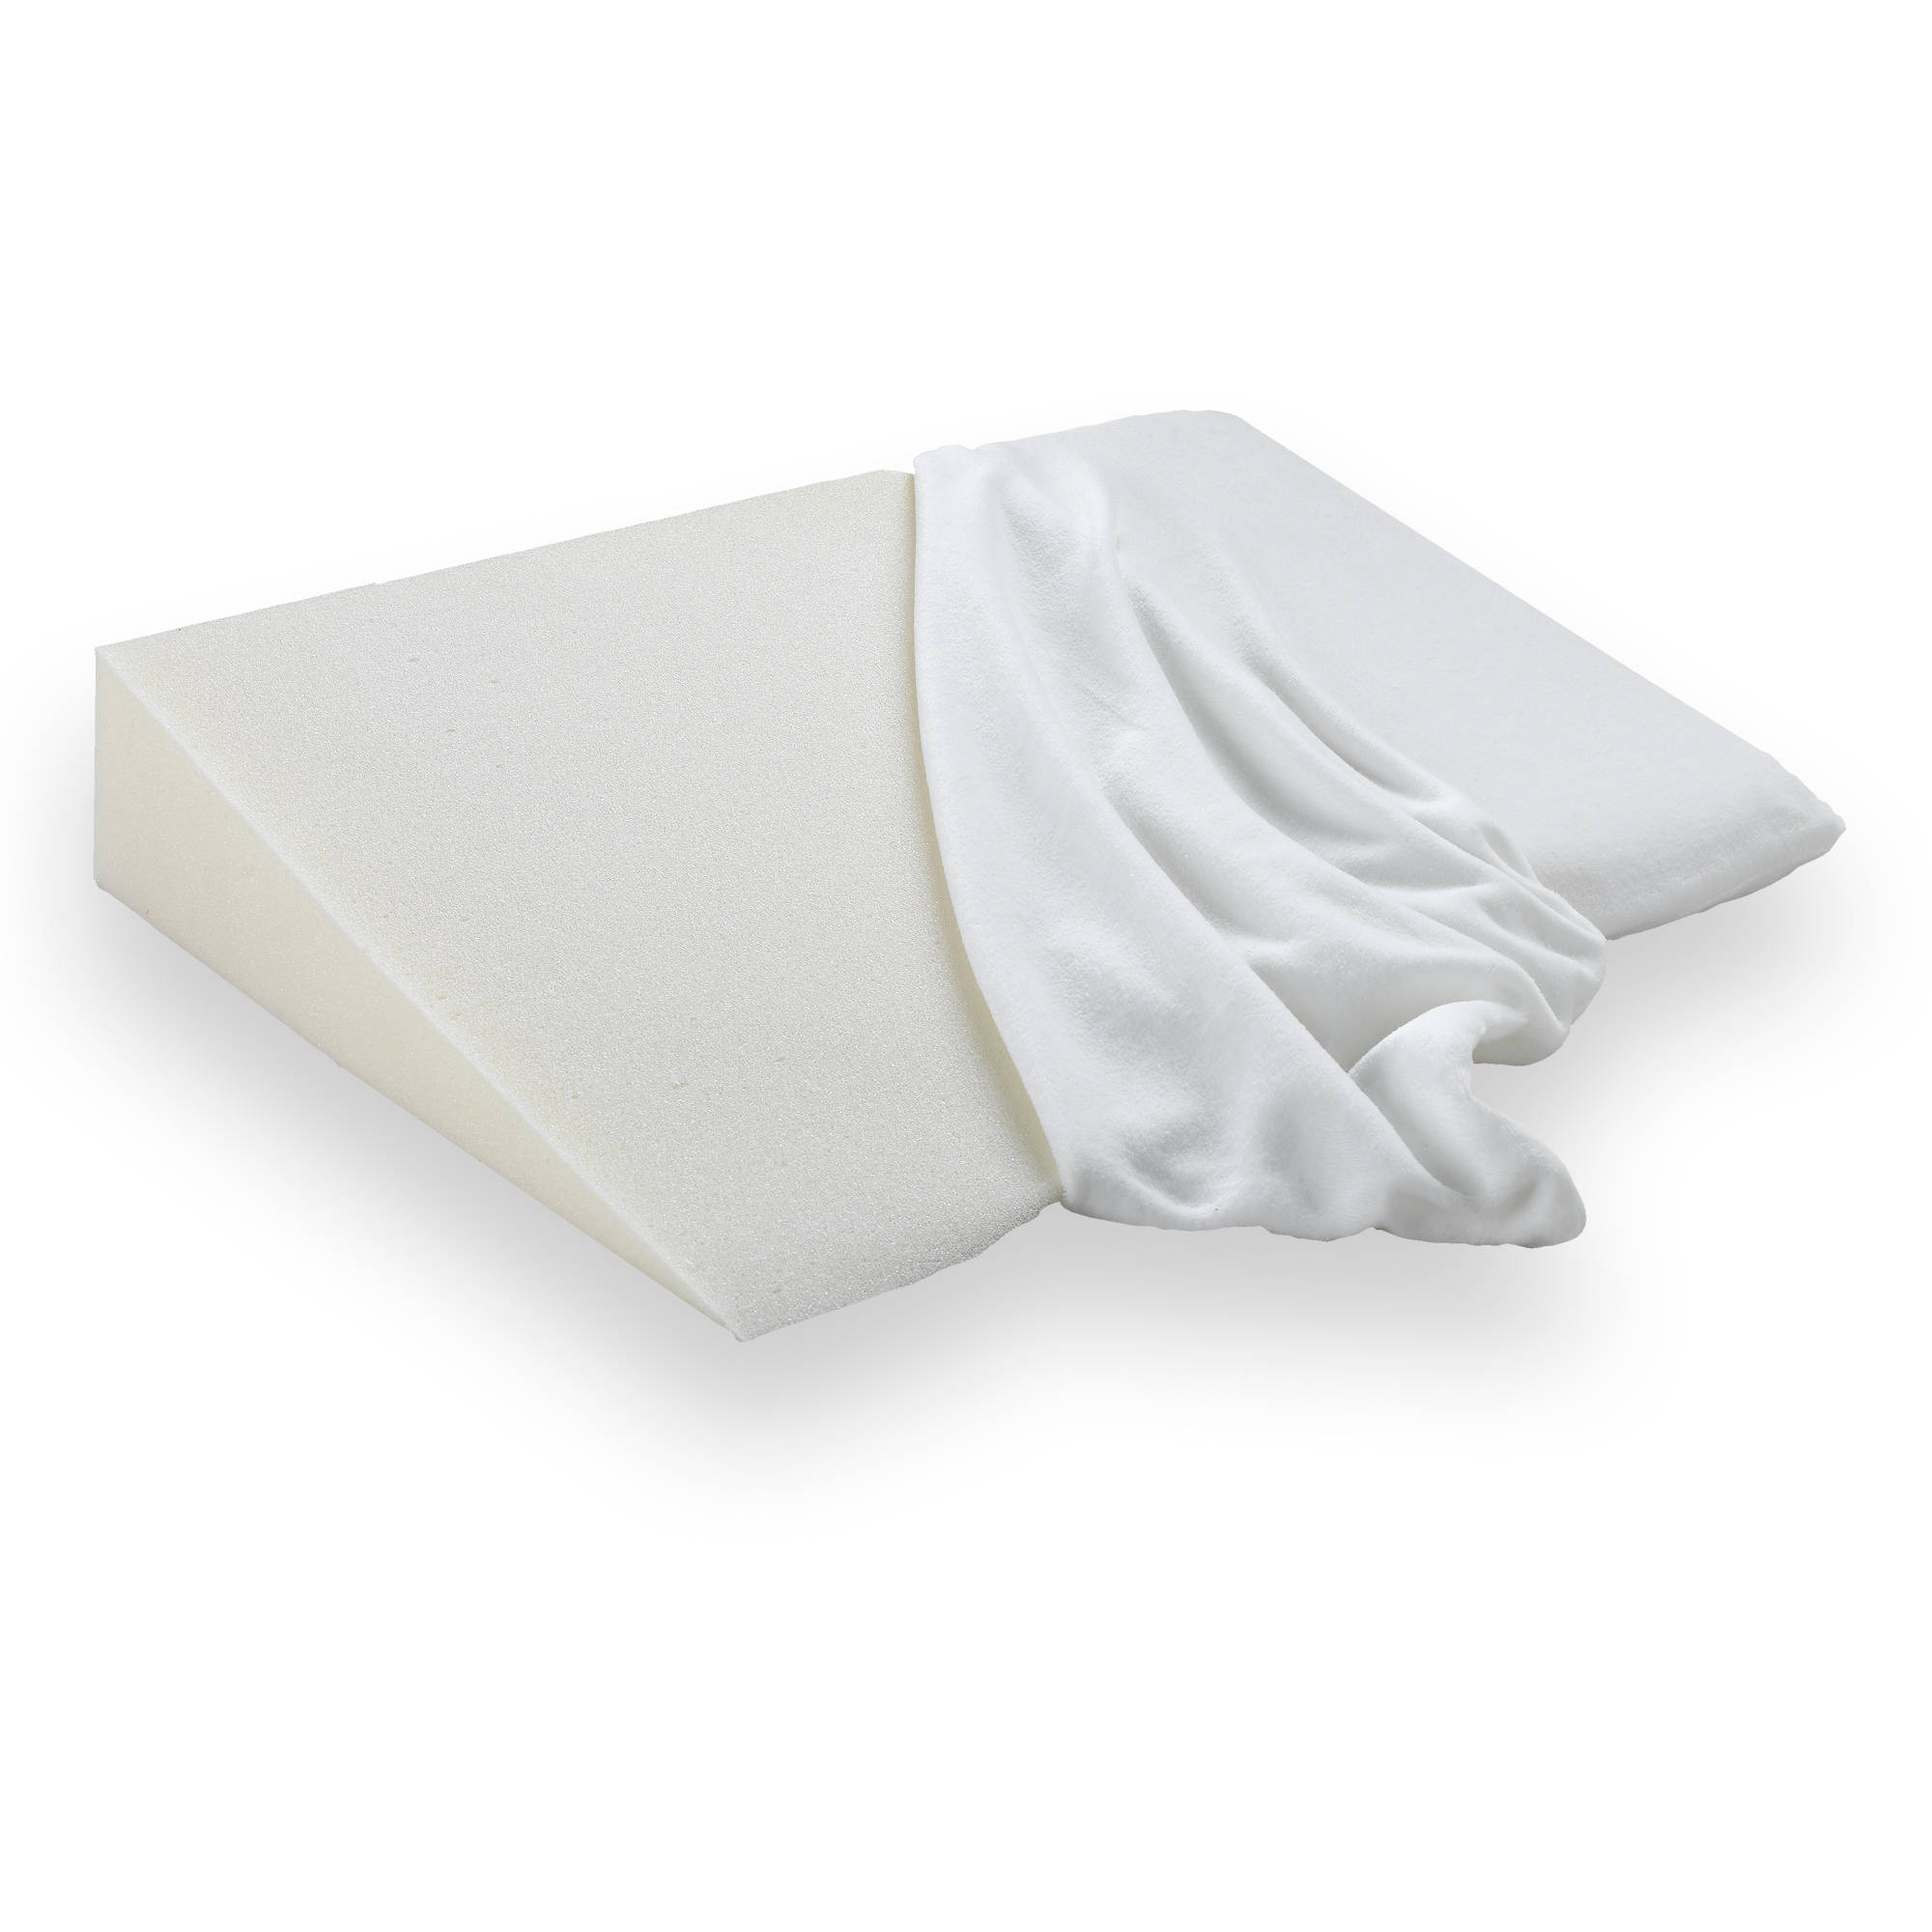 Bed wedge bed bath and beyond - Bed Wedge Bed Bath And Beyond 29